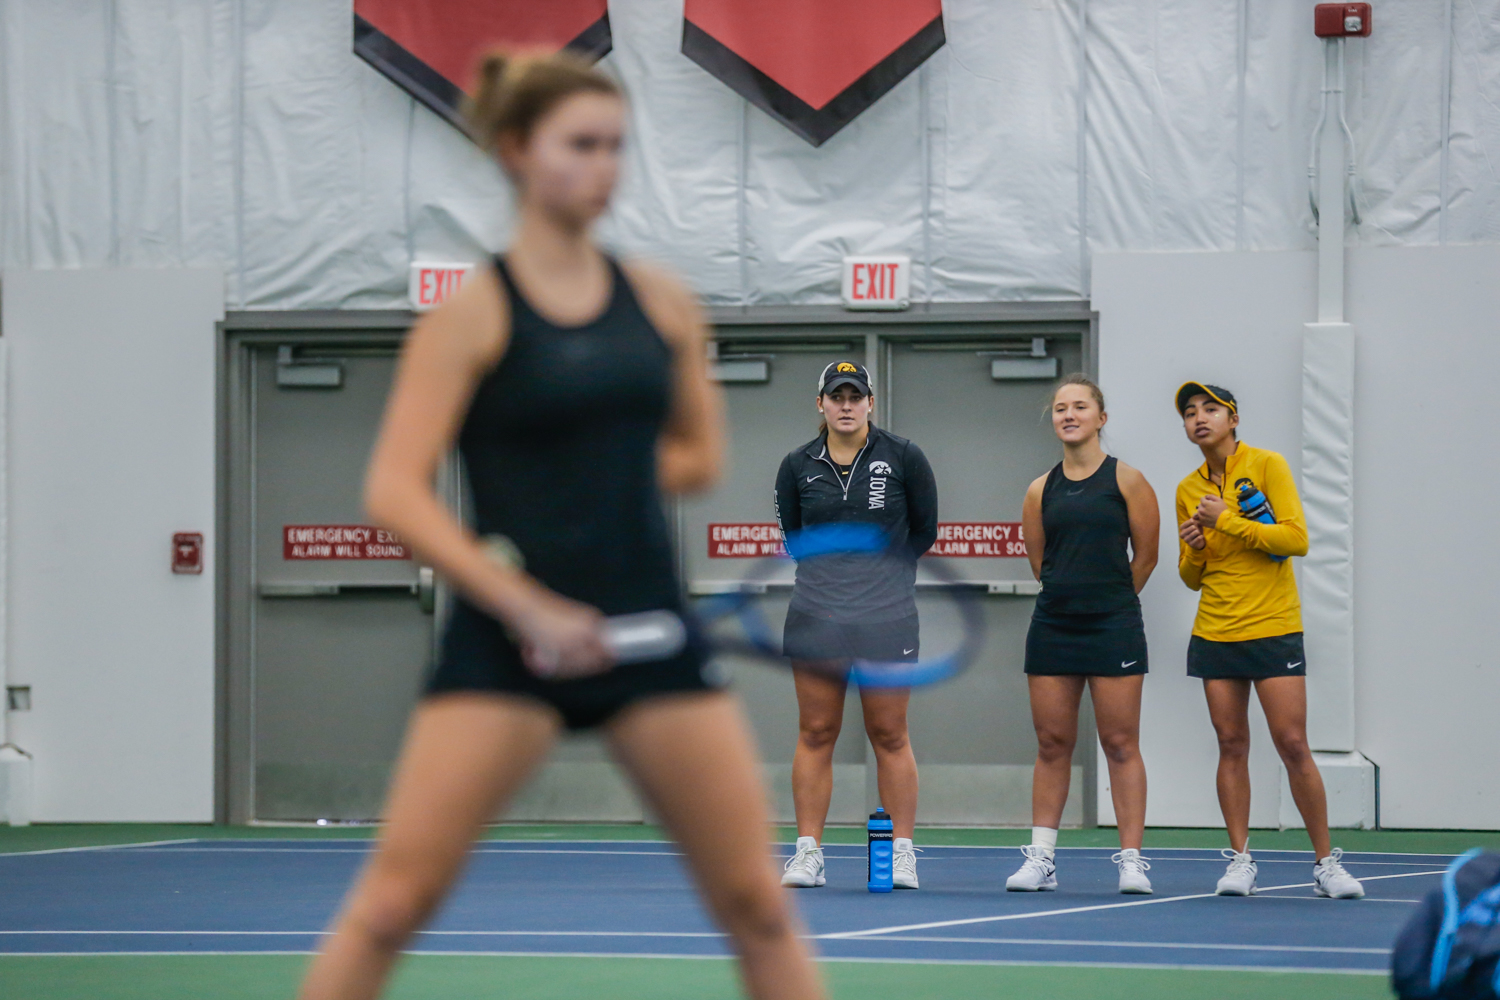 Iowa+players+watch+doubles+matches+during+a+women%27s+tennis+match+between+Iowa+and+Depaul+at+the+Hawkeye+Tennis+and+Recreation+Complex+on+Saturday%2C+February+9%2C+2019.+The+Hawkeyes+defeated+the+Blue+Demons%2C+6-1.